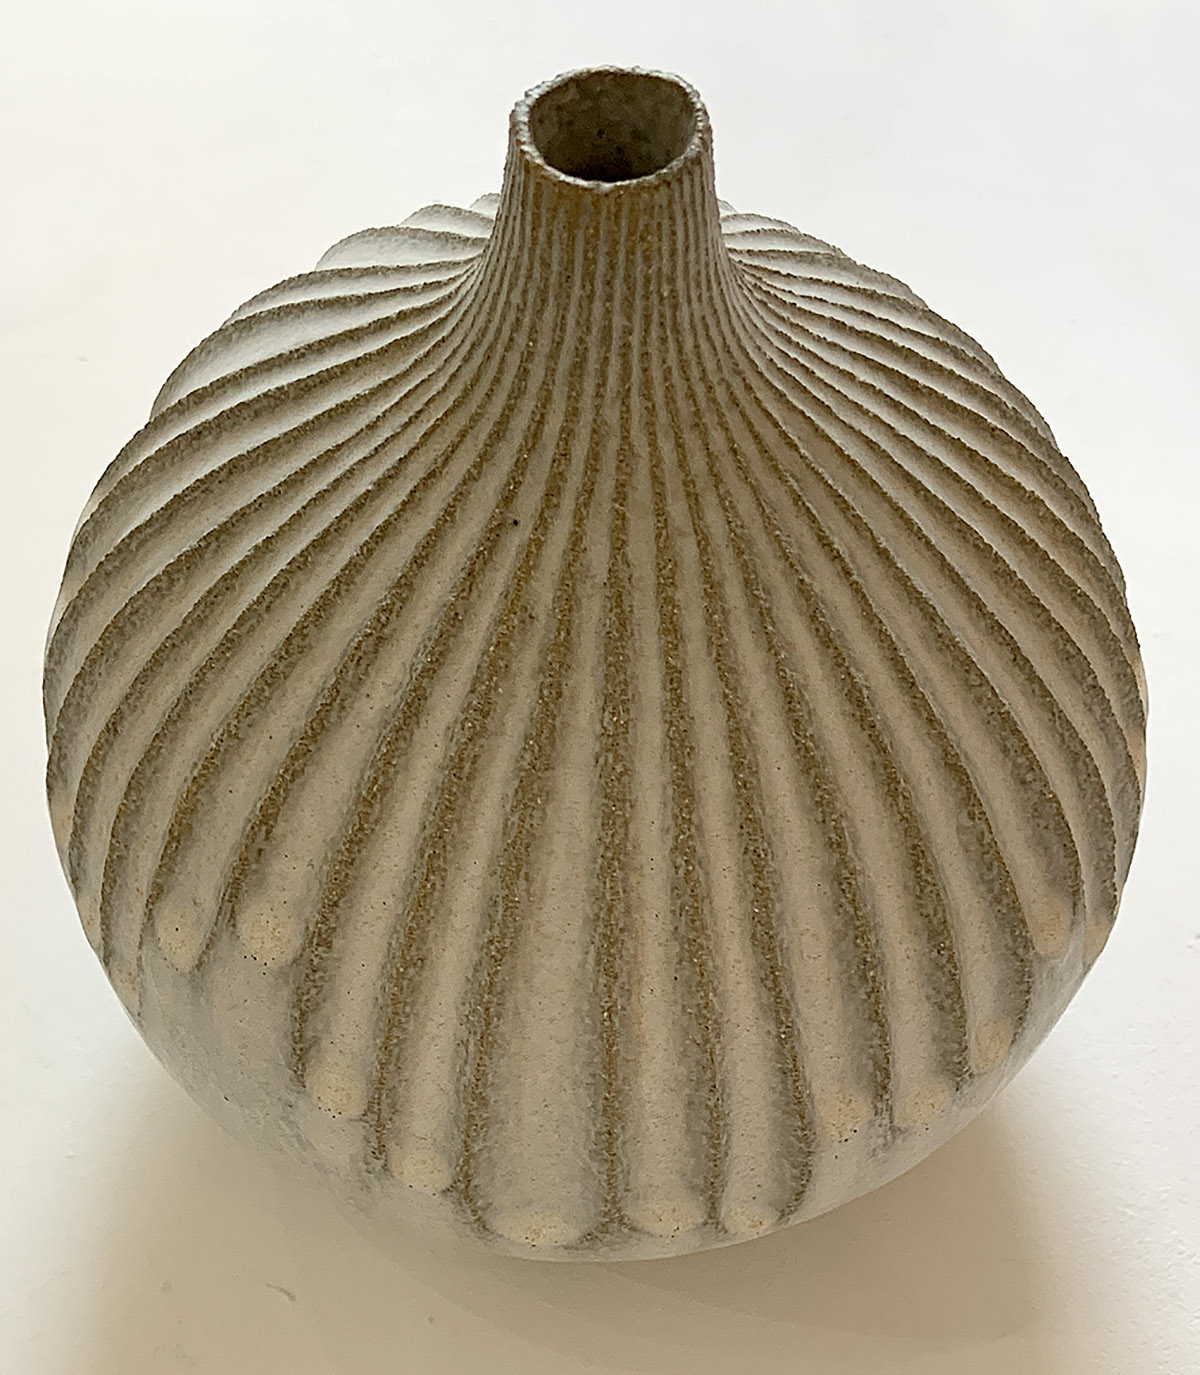 Michele Bianco, 'Rindle Carved Bottle', hand-carved grey grogged stomeware, off-white glaze